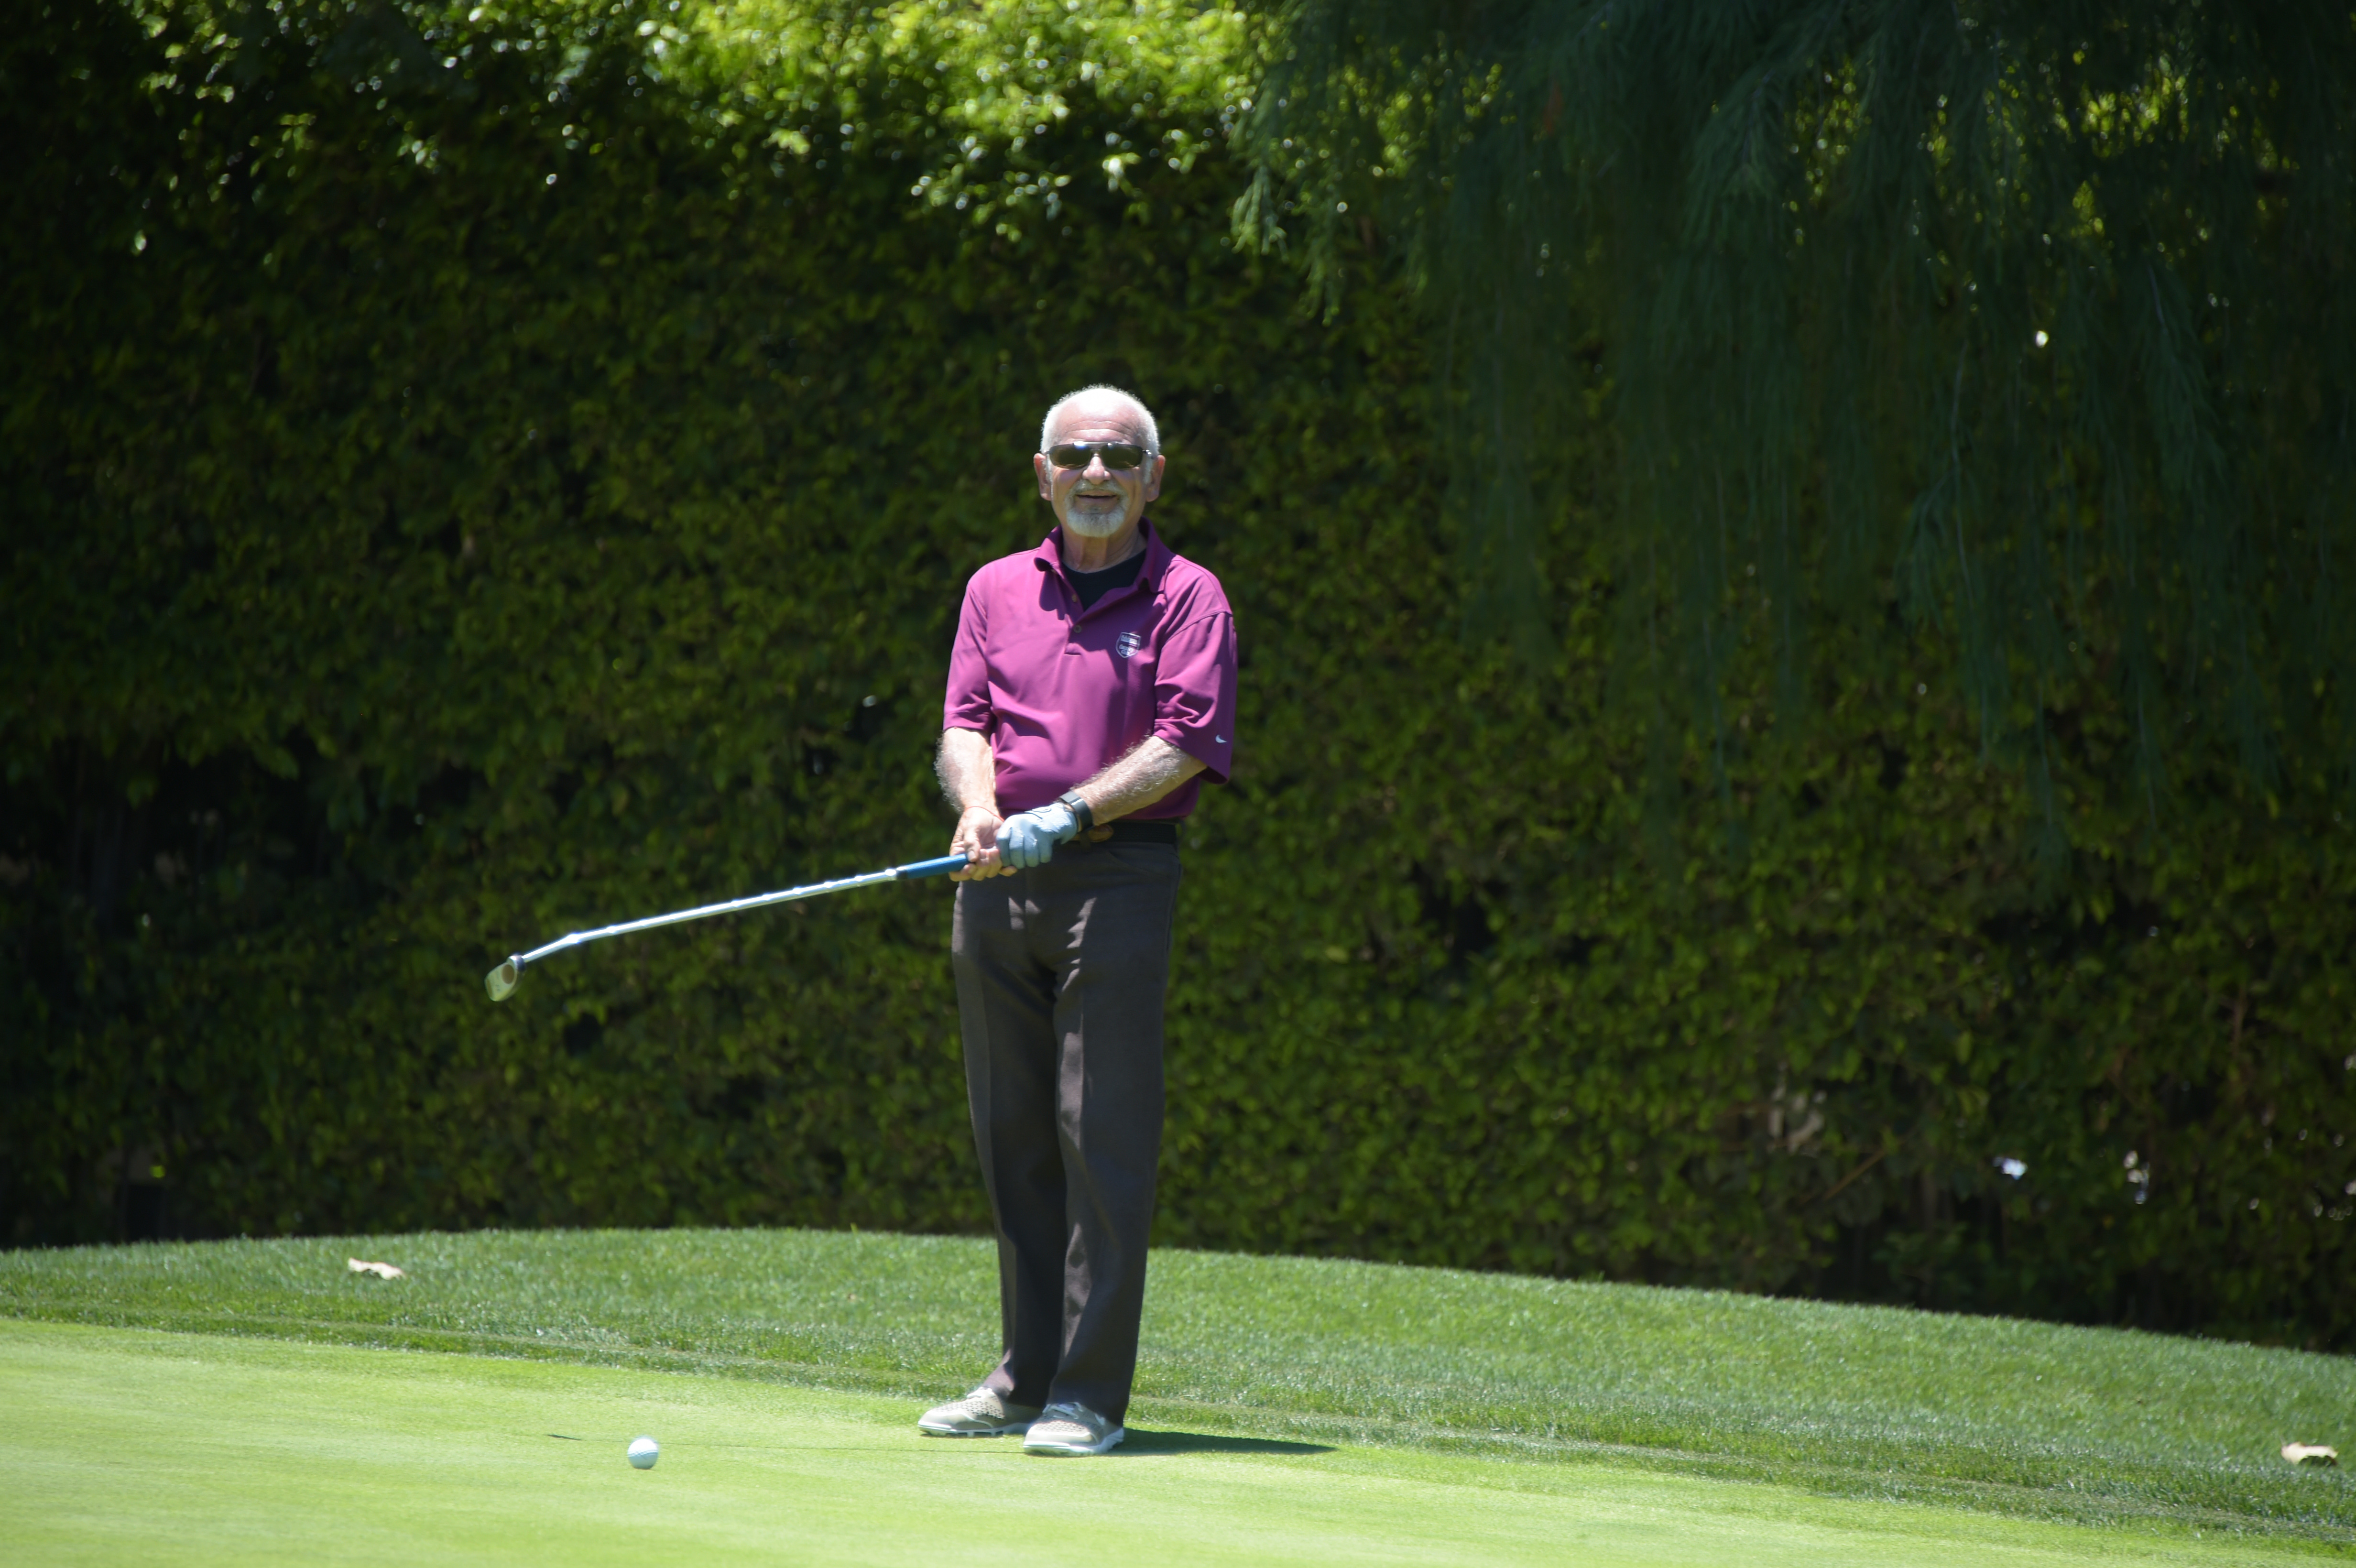 Joe Pesci plays at the Screen Actors Guild Foundation's 6th Annual Los Angeles Golf Classic on June 8, 2015 in Burbank, California. (Photo by Jason Kempin/Getty Images for The Screen Actors Guild Foundation)